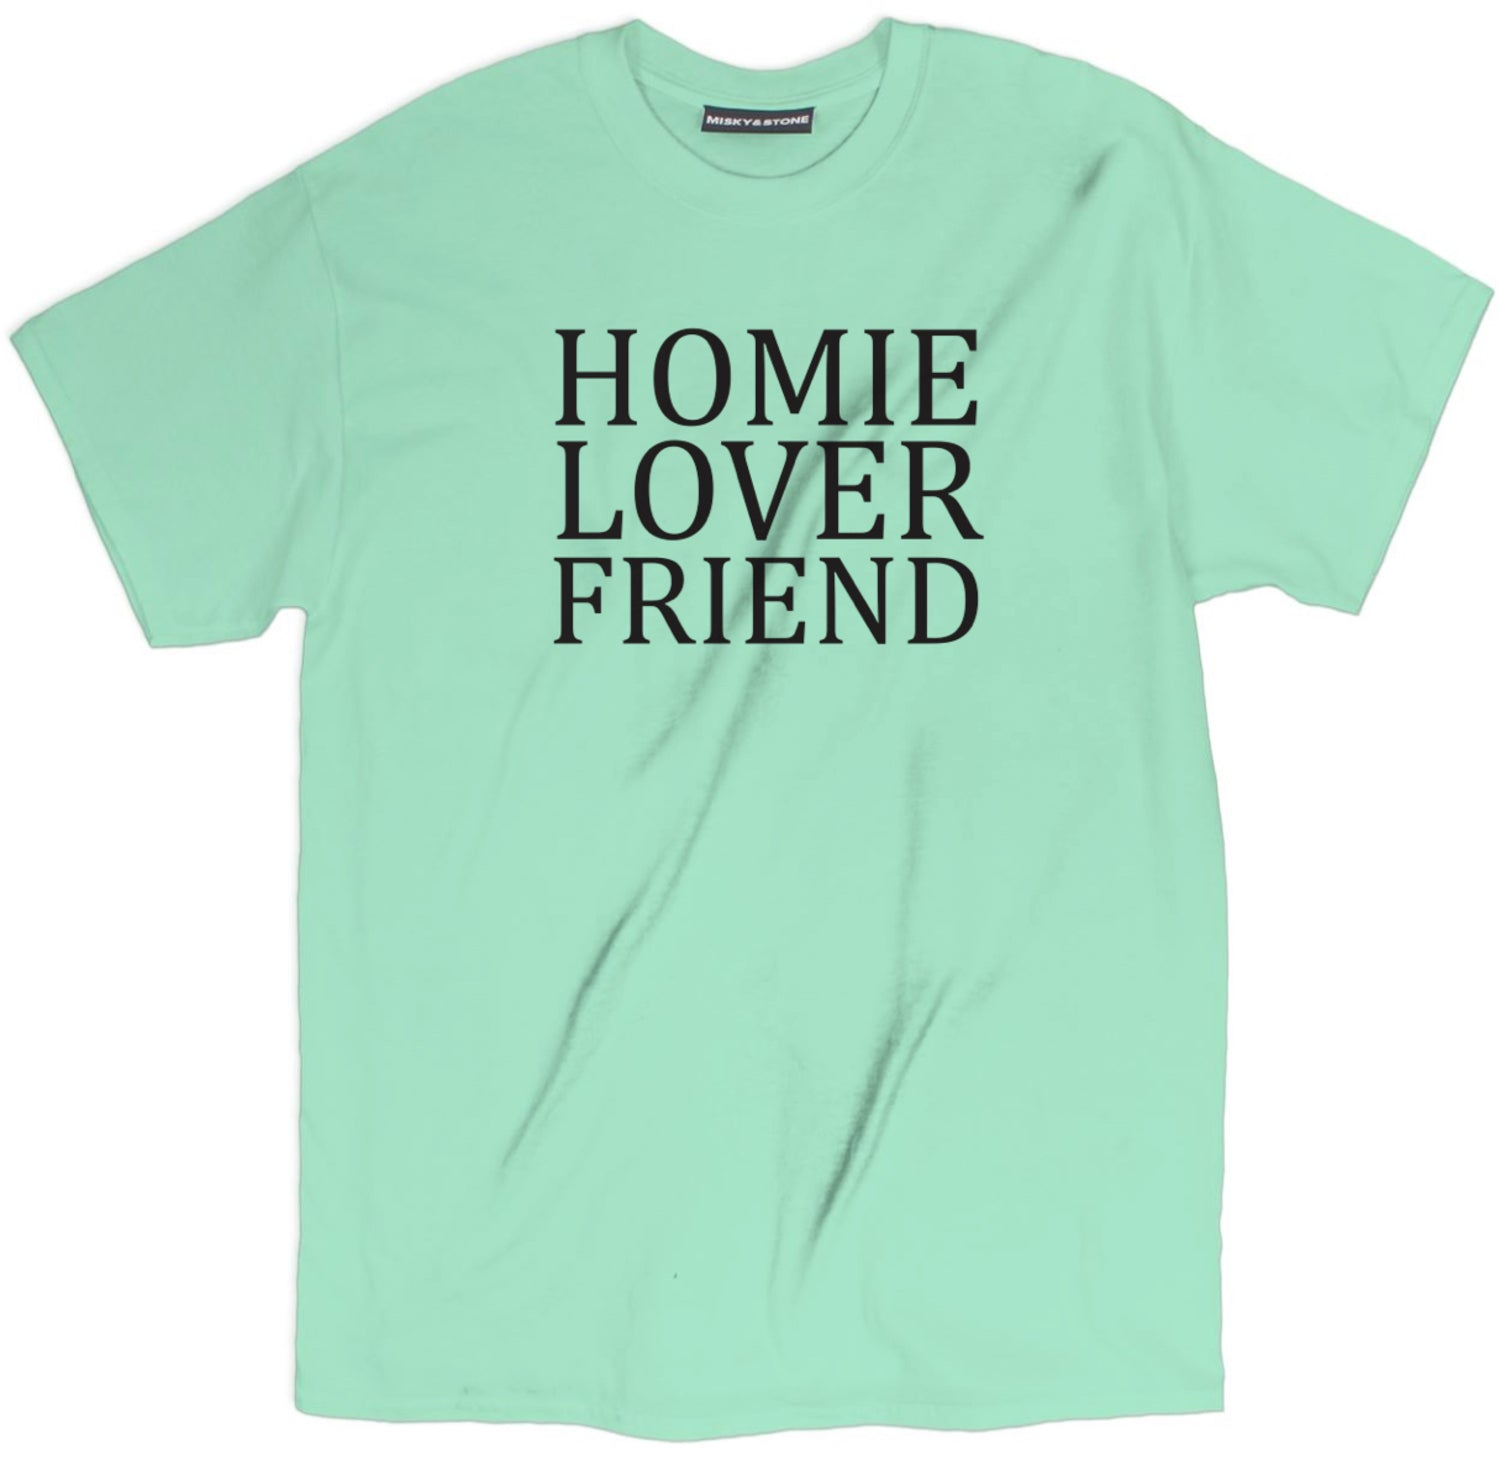 Homie Lover Friend Tee